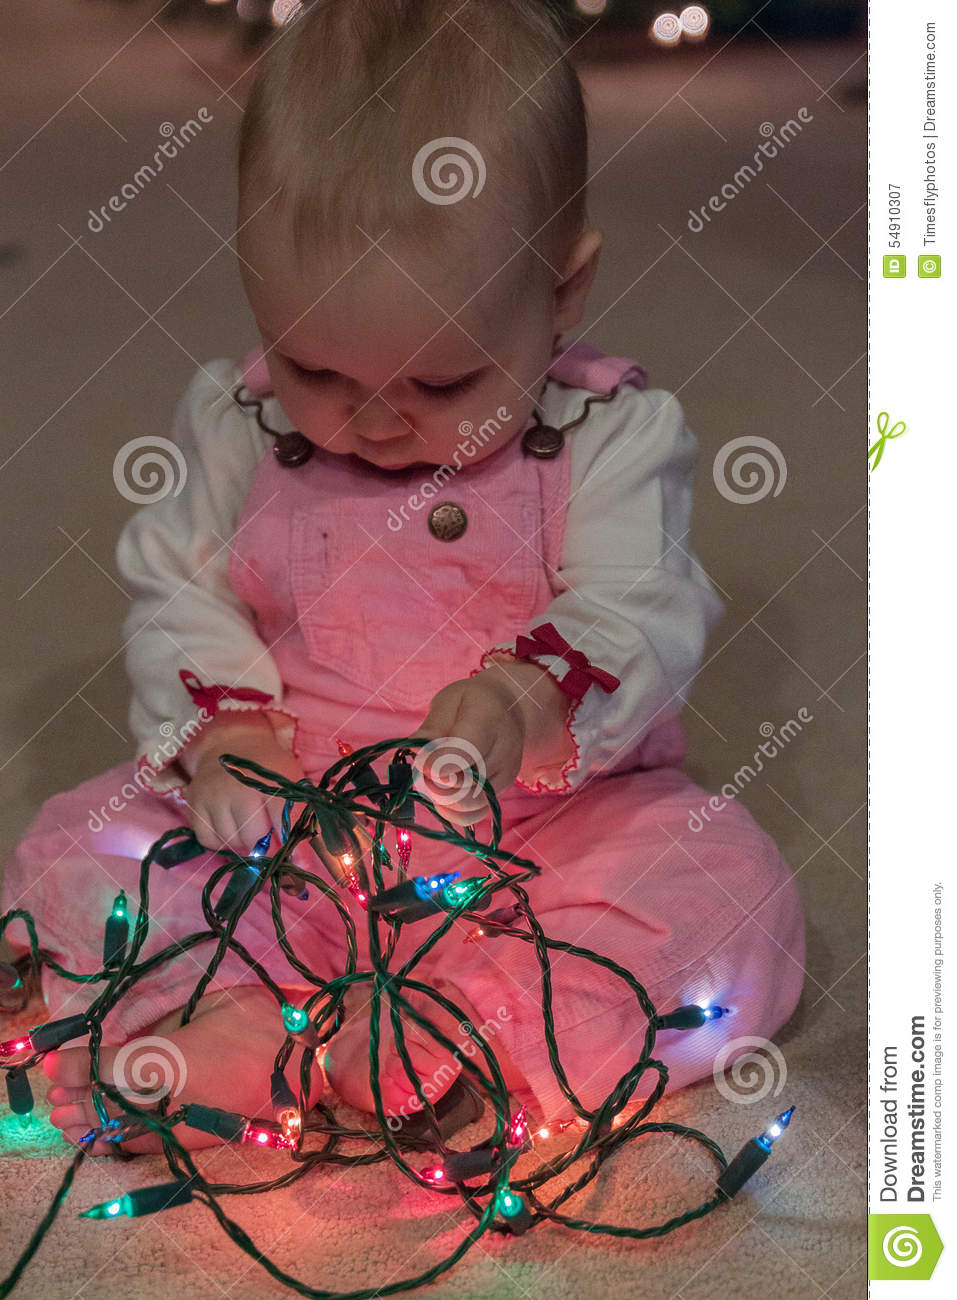 how to take baby photos with christmas lights